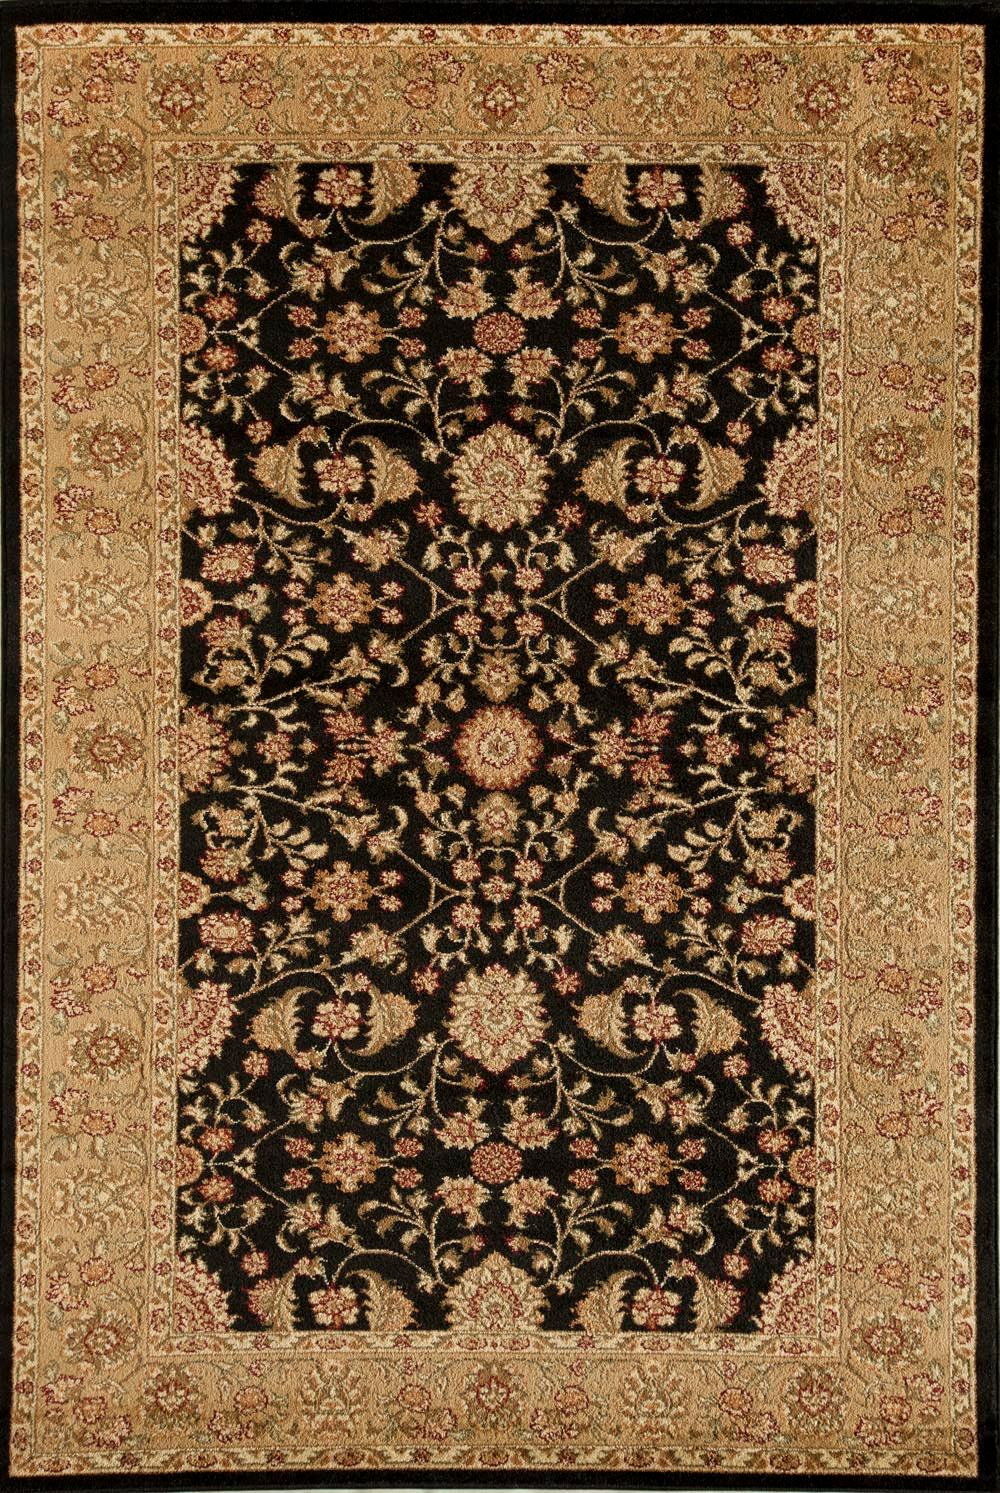 Rugs America Sorrento Tabriz Black 3129 Rug 6 Foot 7